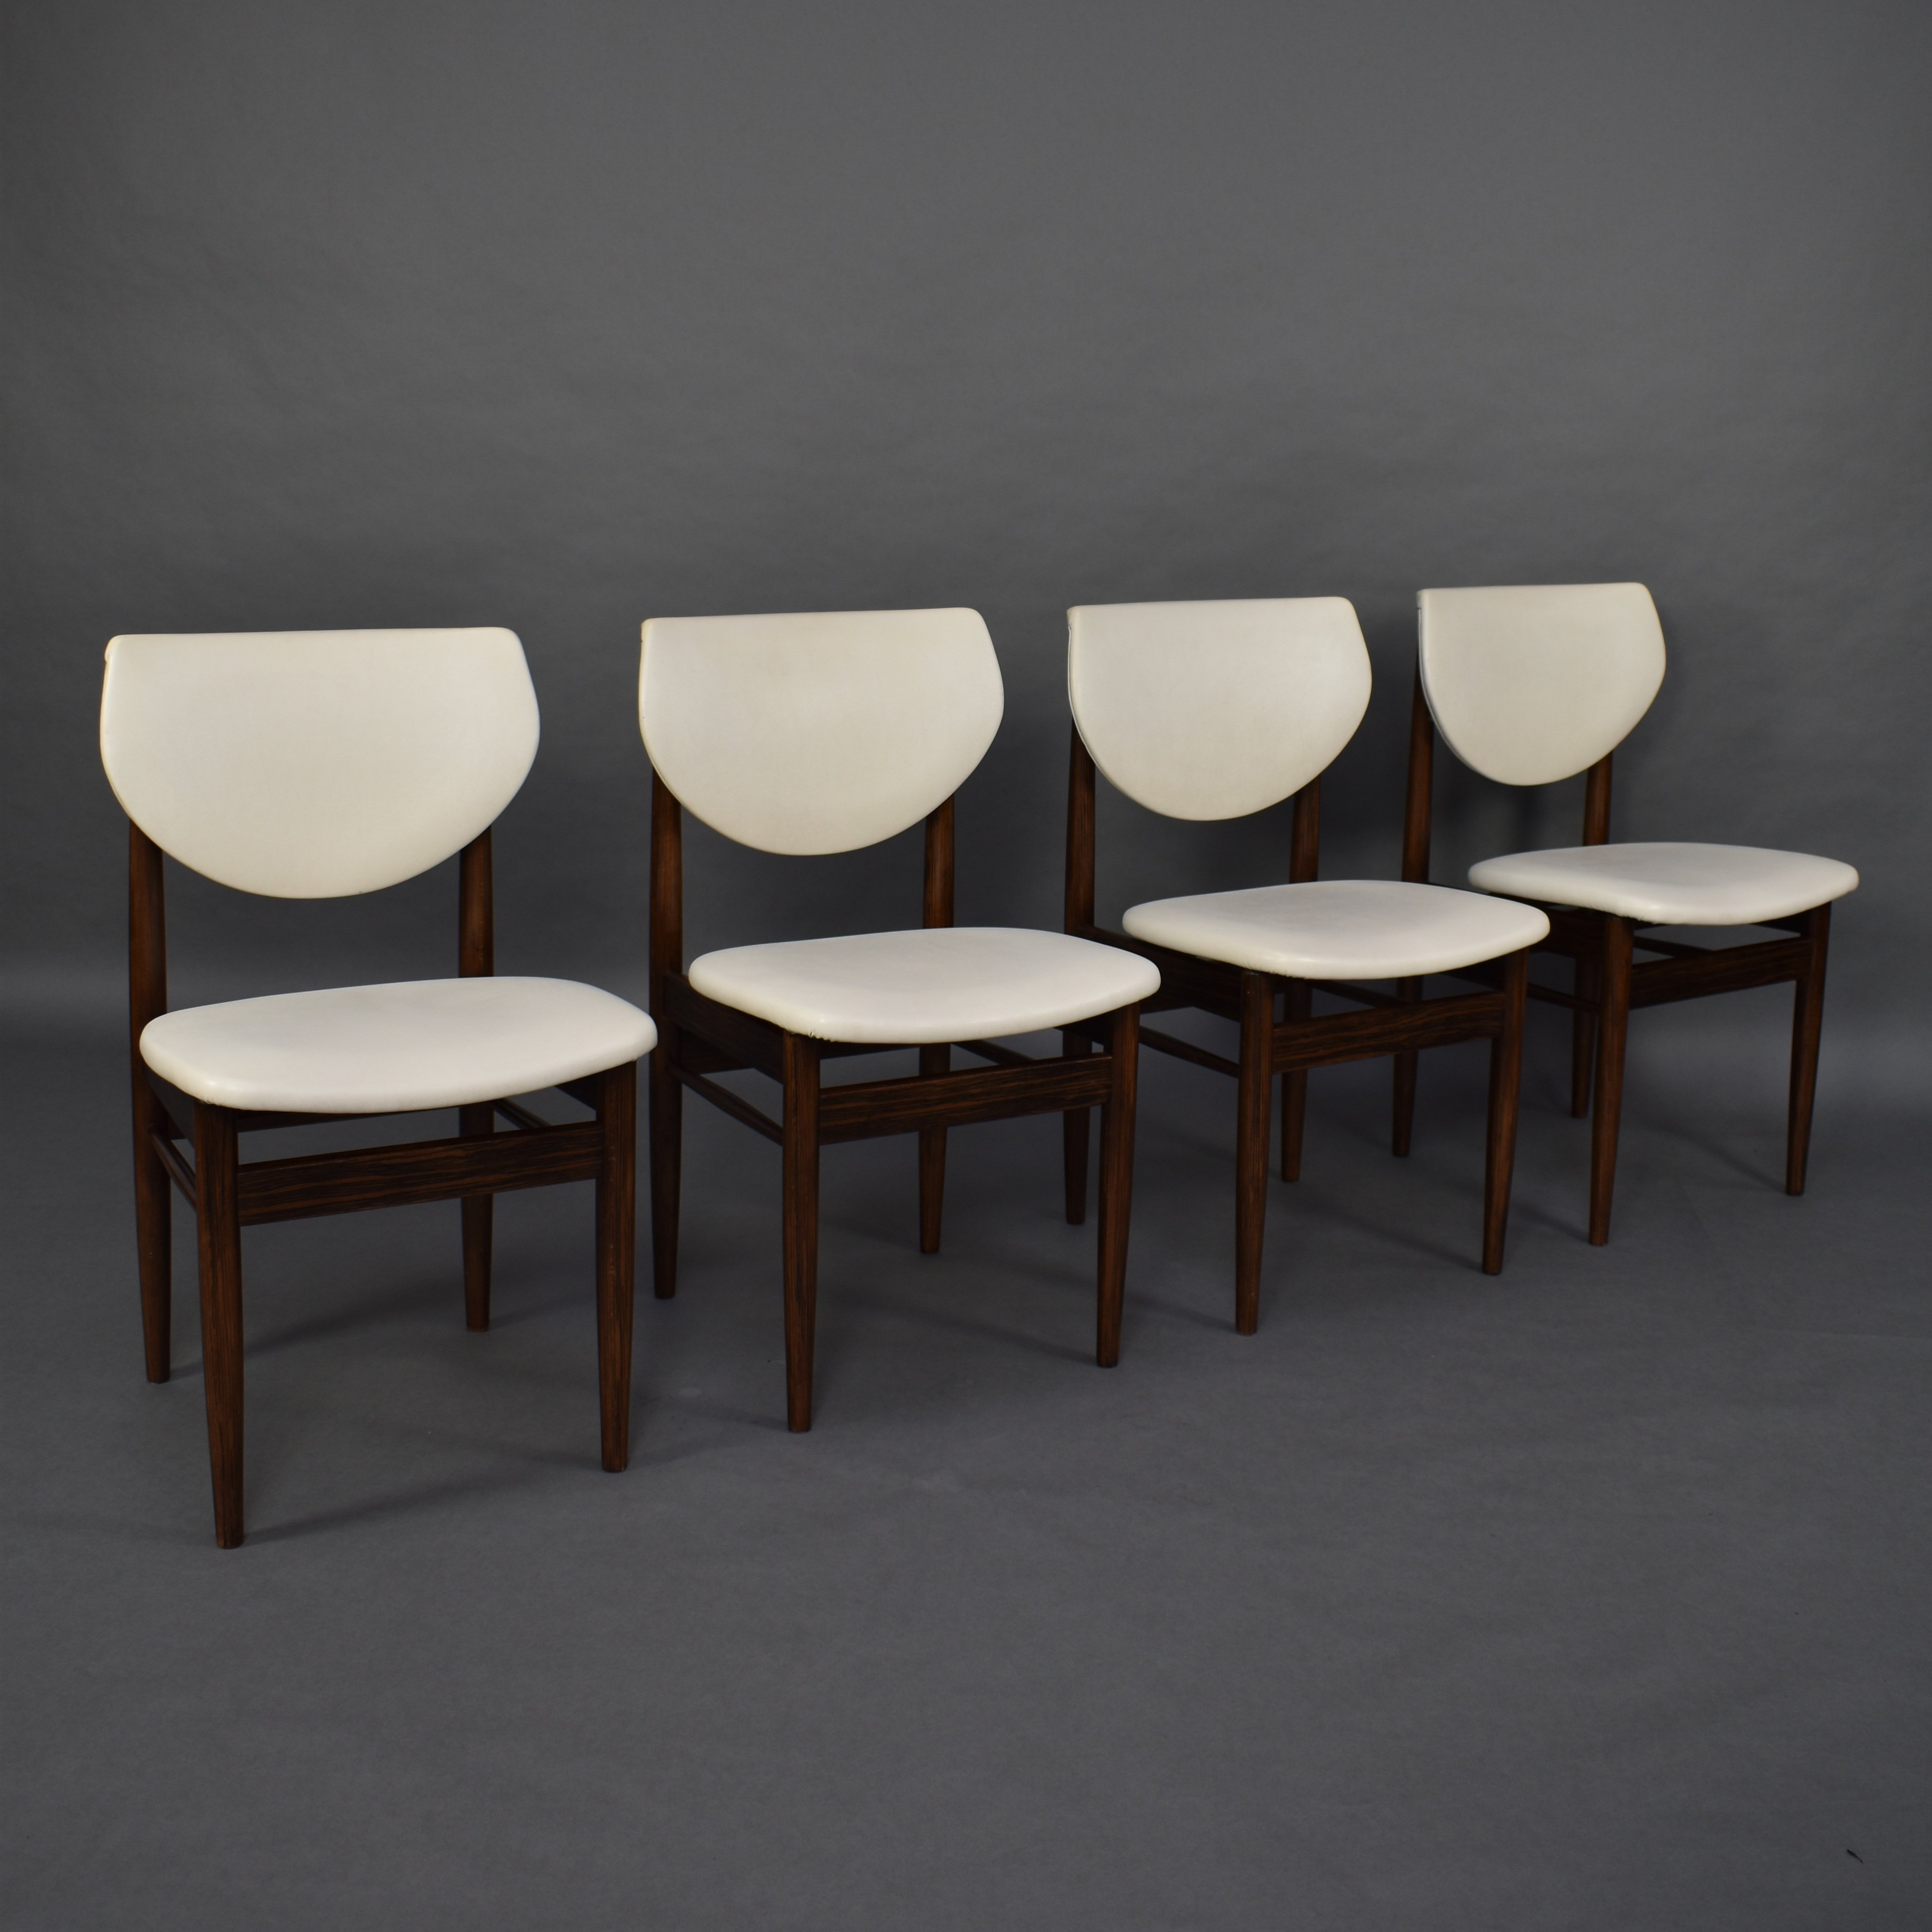 Outstanding Set Of 4 Wenge Dining Chairs Circa 1950 60S 94219 Lamtechconsult Wood Chair Design Ideas Lamtechconsultcom